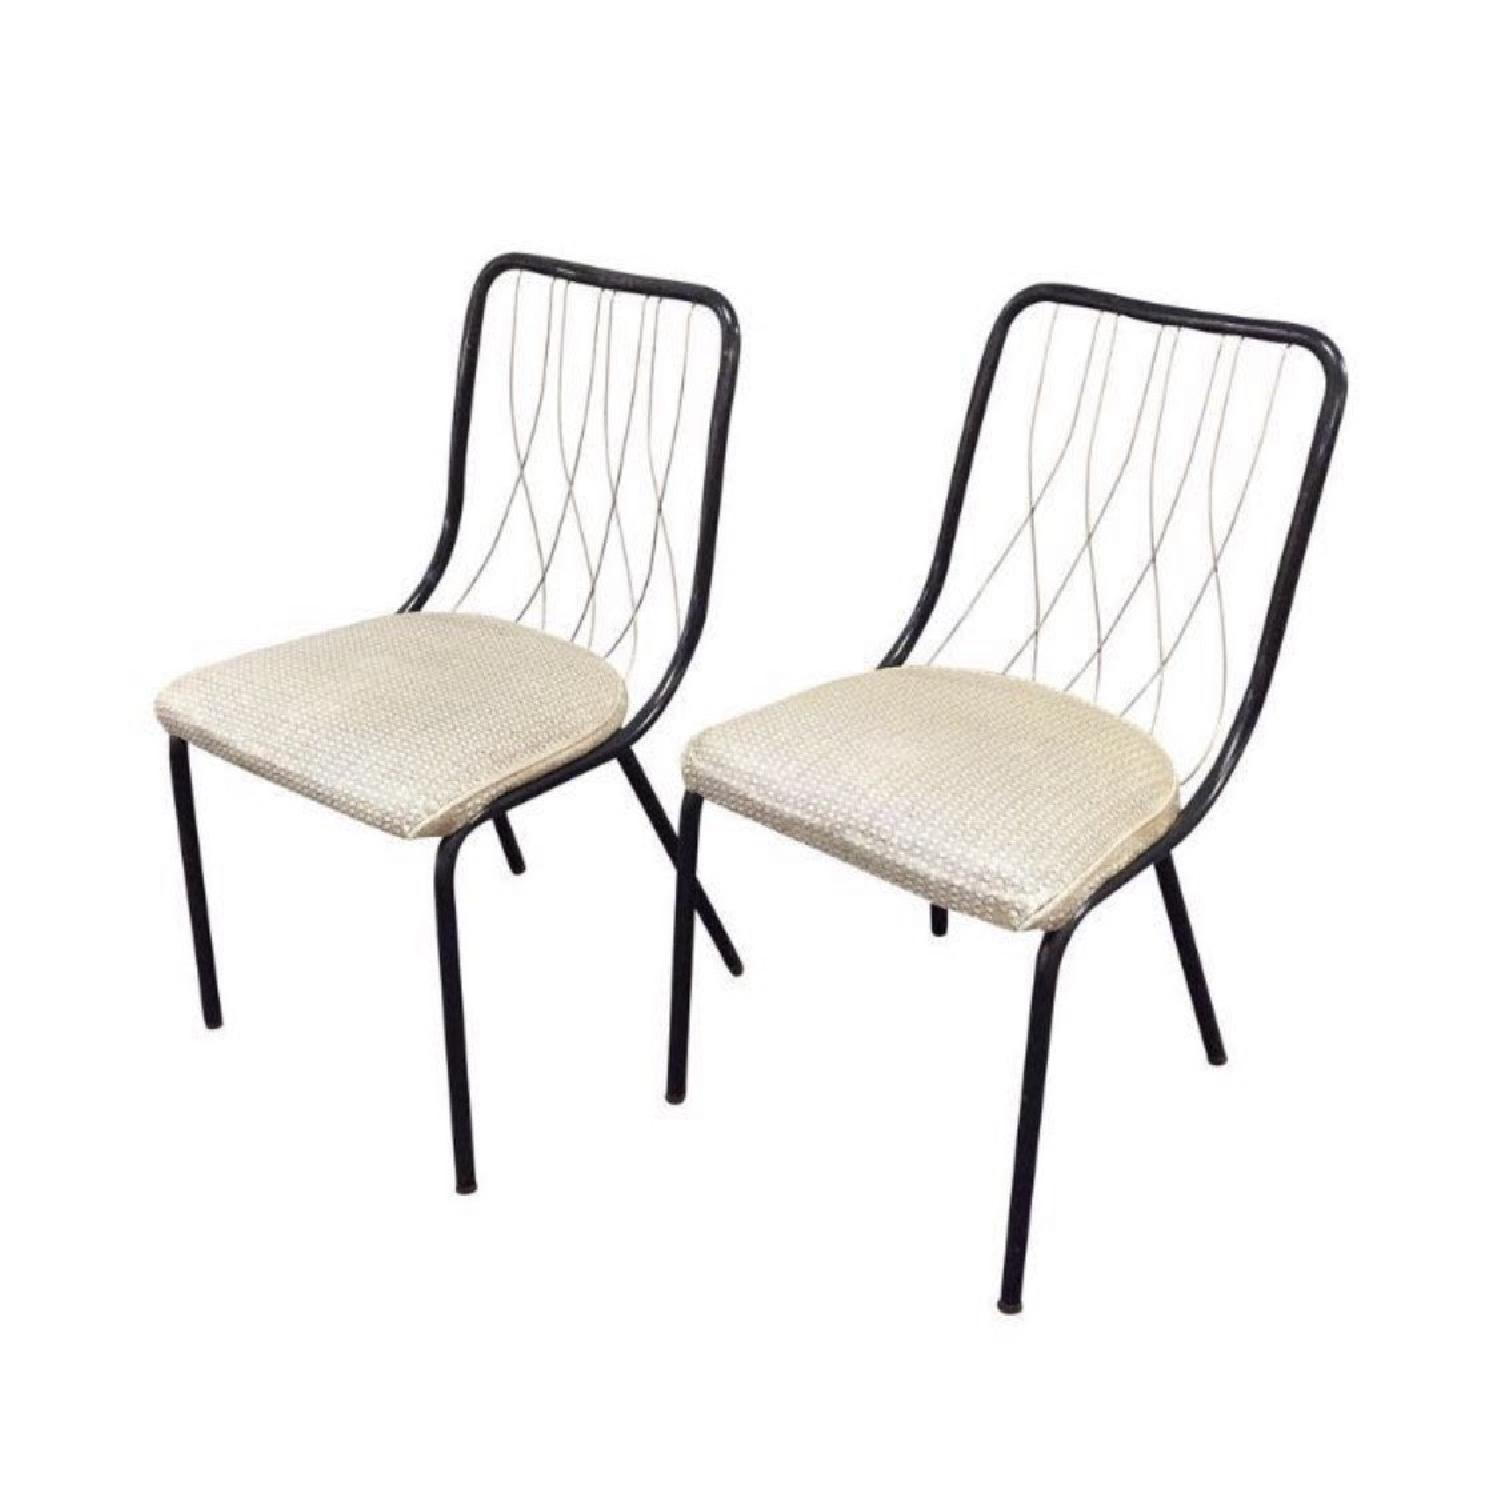 Vintage French Art Deco Brass & Leather Chairs - image-0